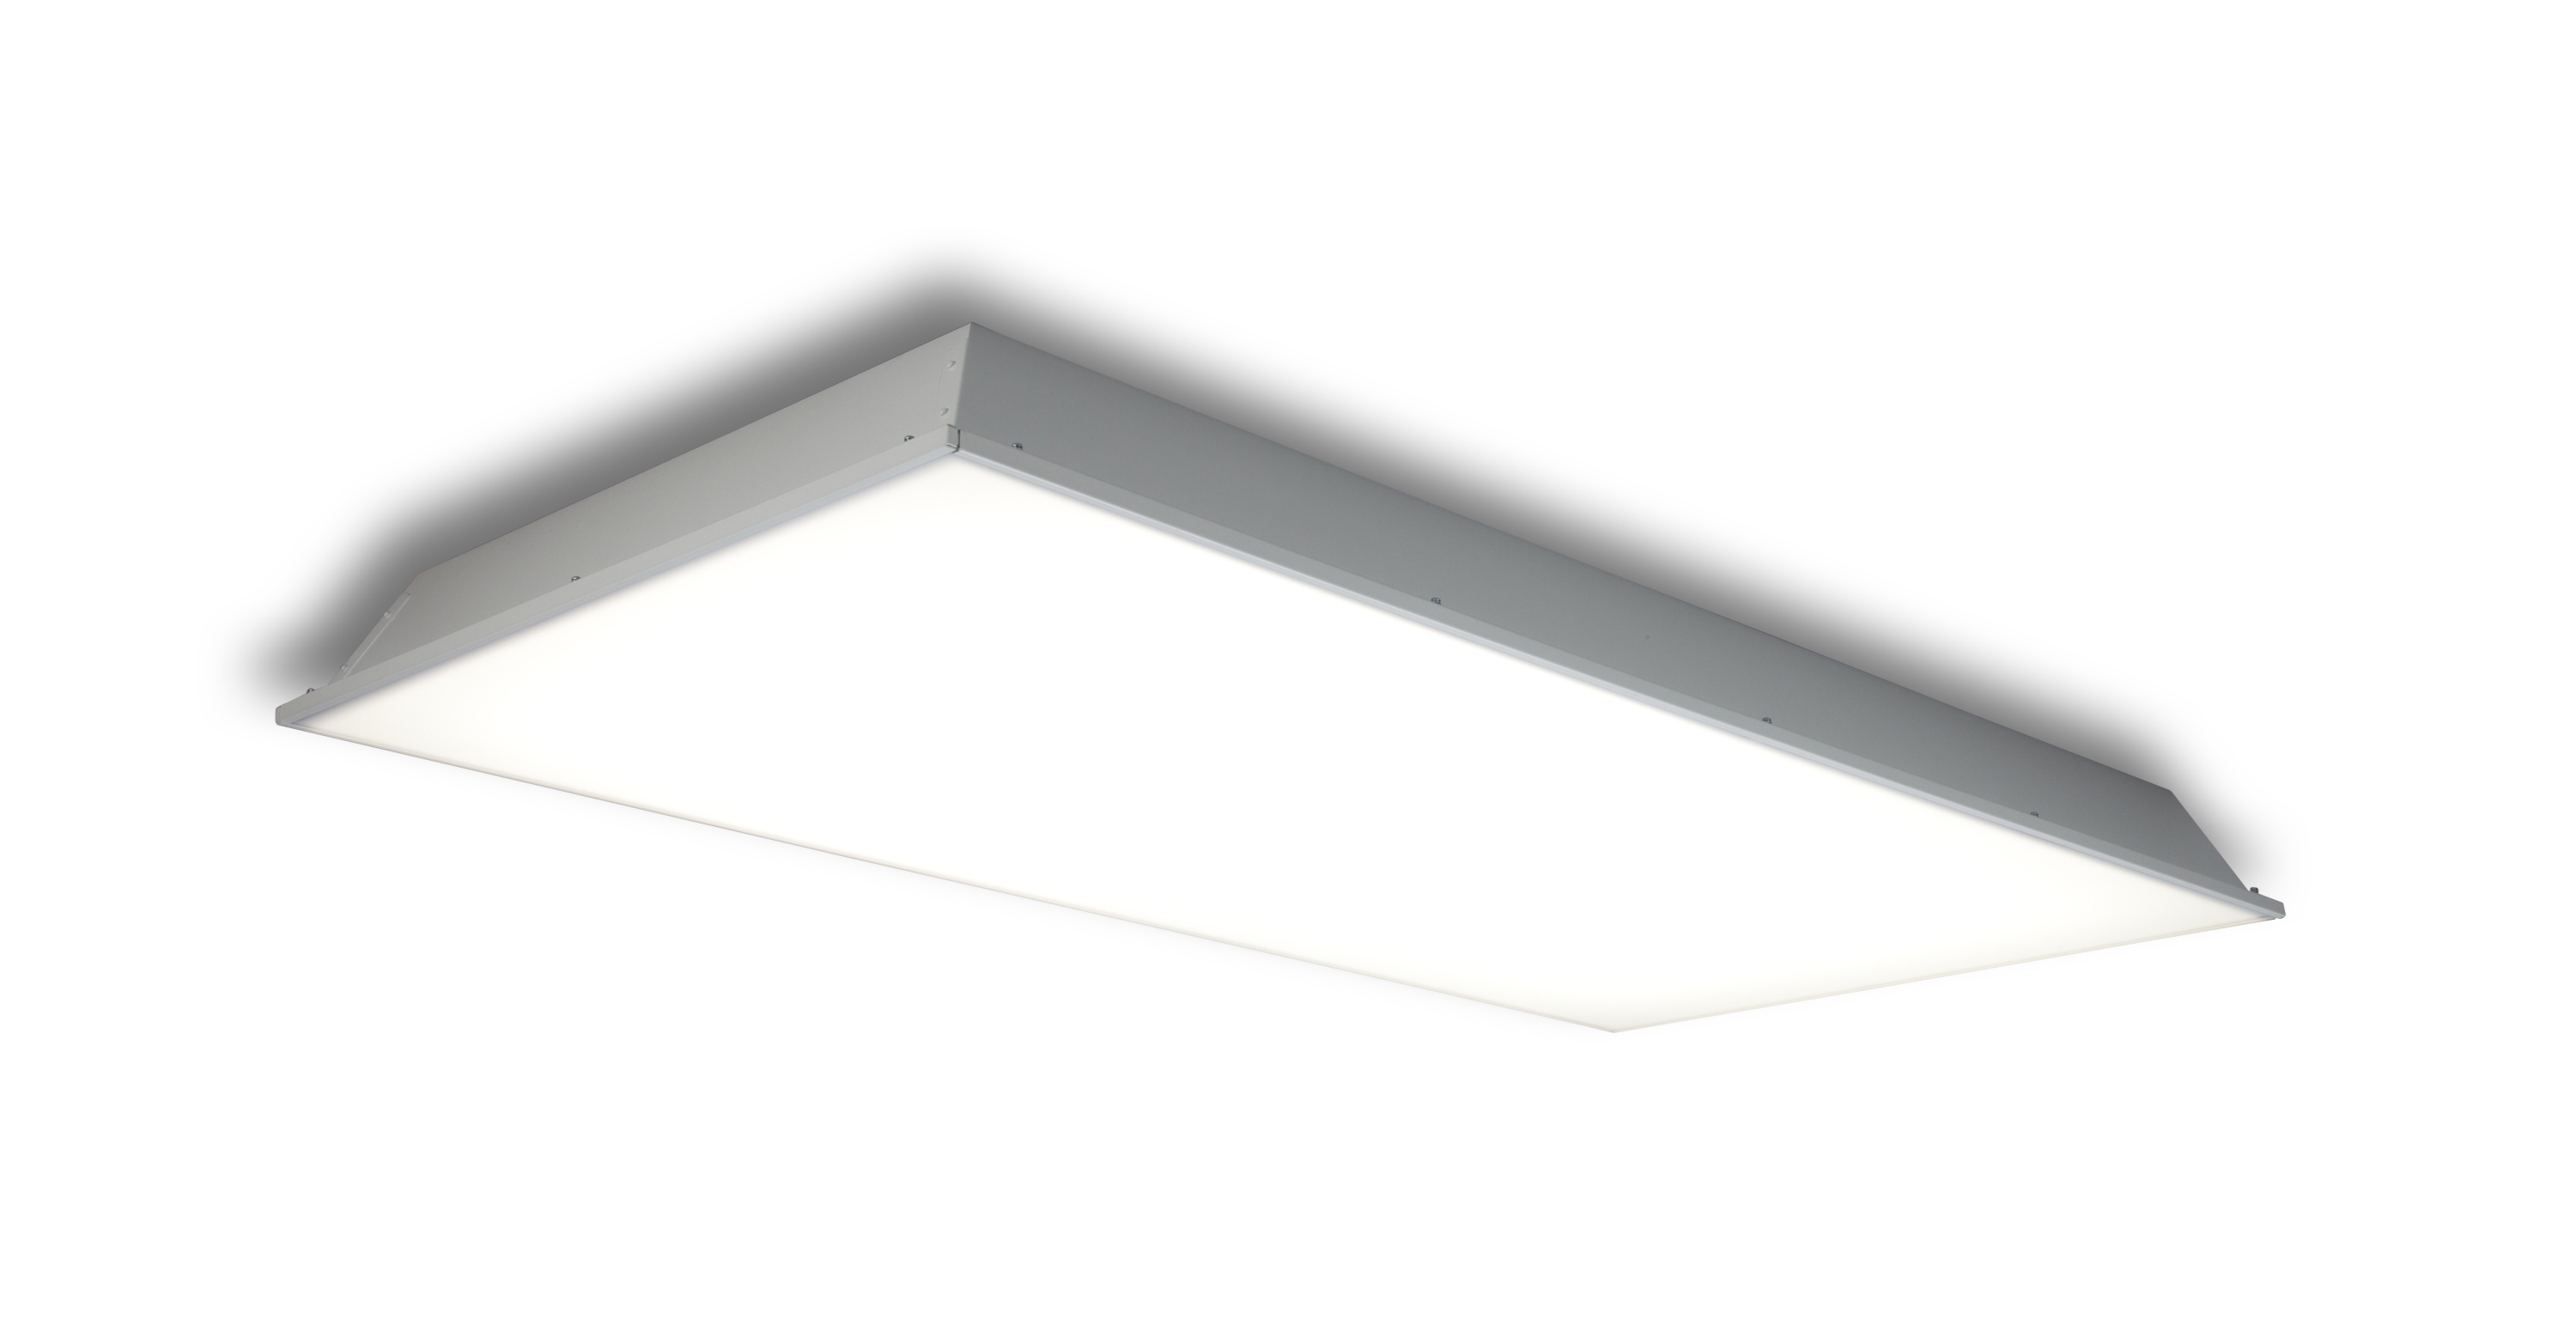 GEu2019s Luminationu2122 BT Series LED Lighting Fixture Refreshes Commercial Ceilings. : GE Lighting ...